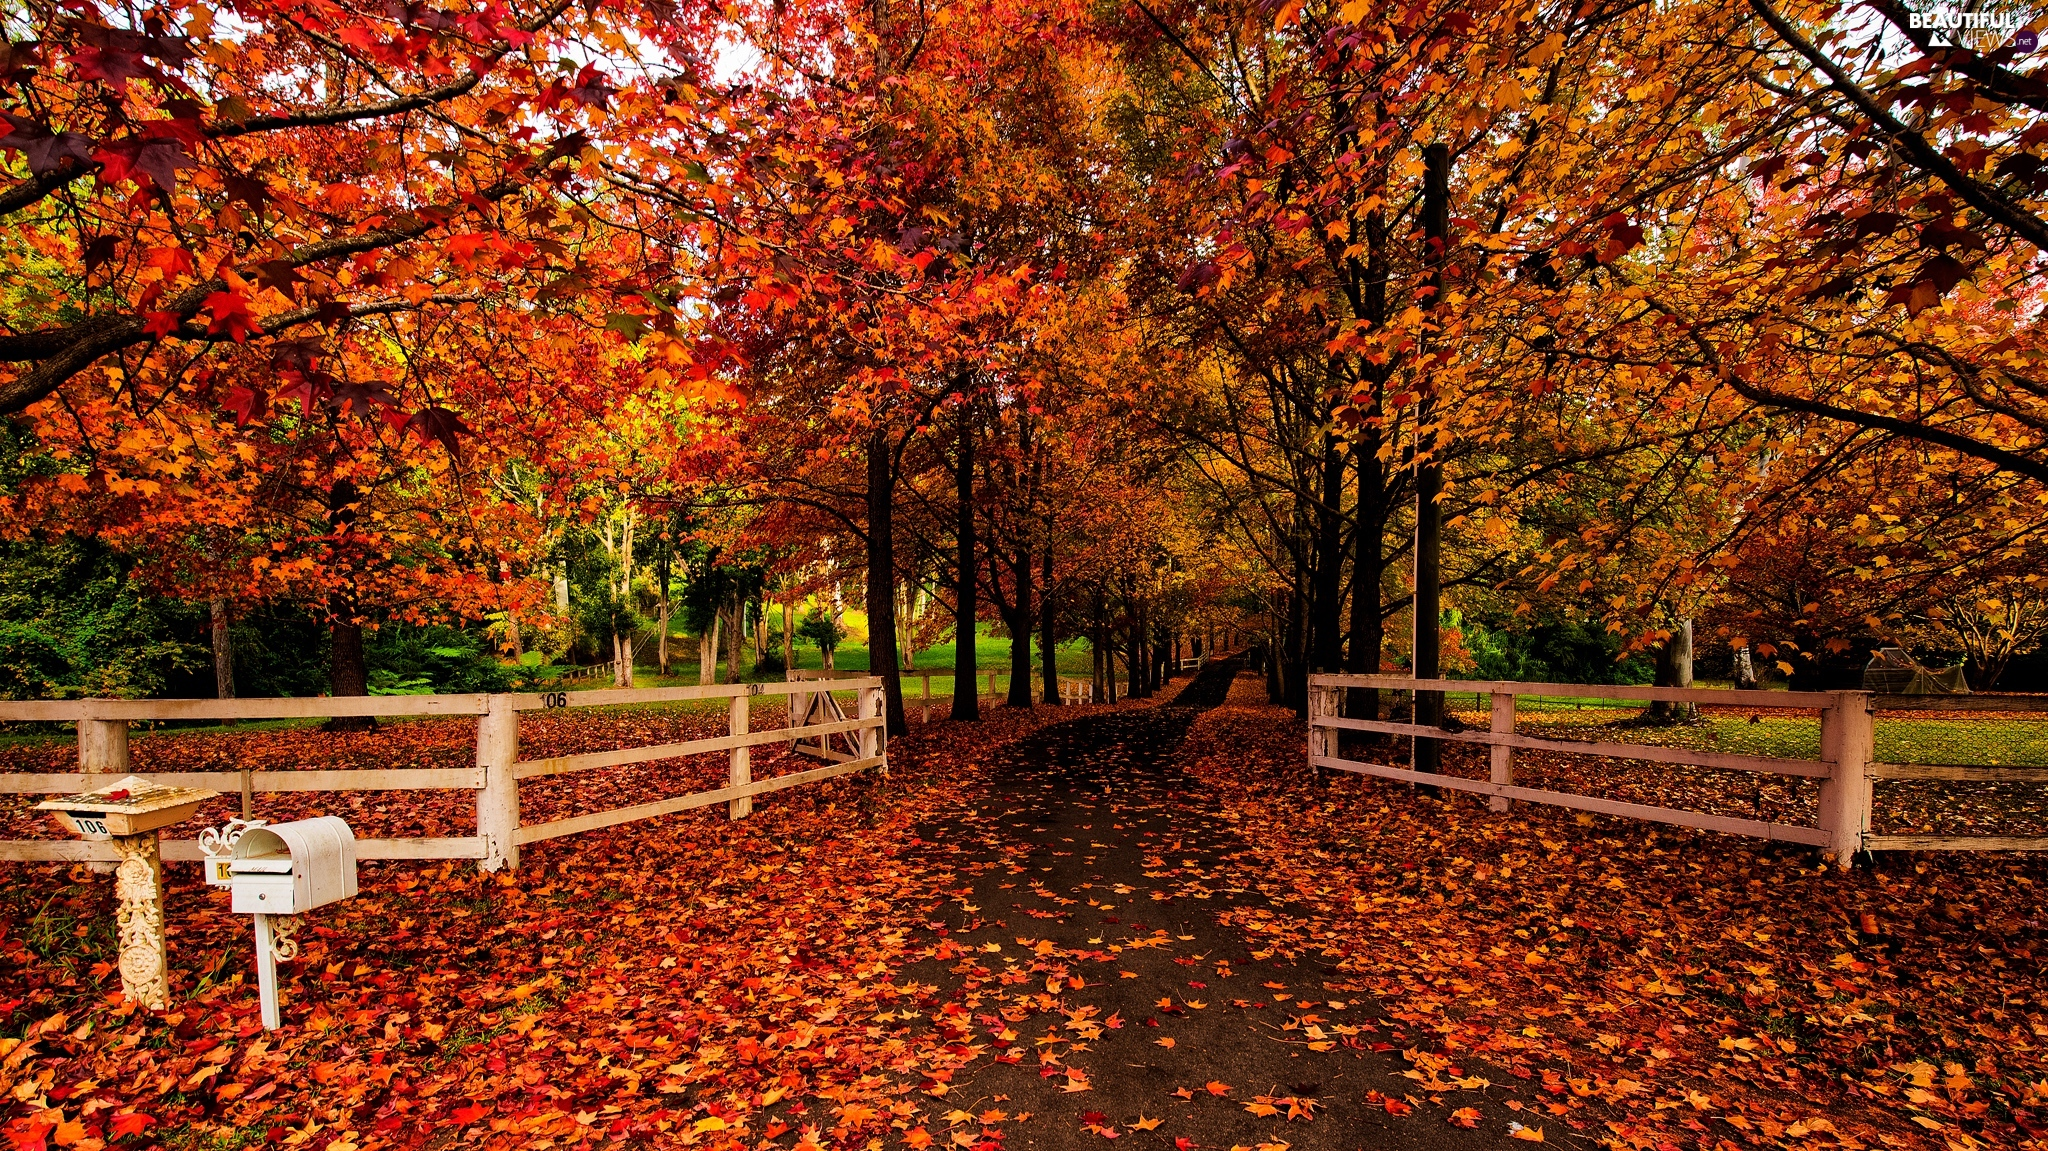 Leaf, trees, Way, viewes, autumn, Fences, box